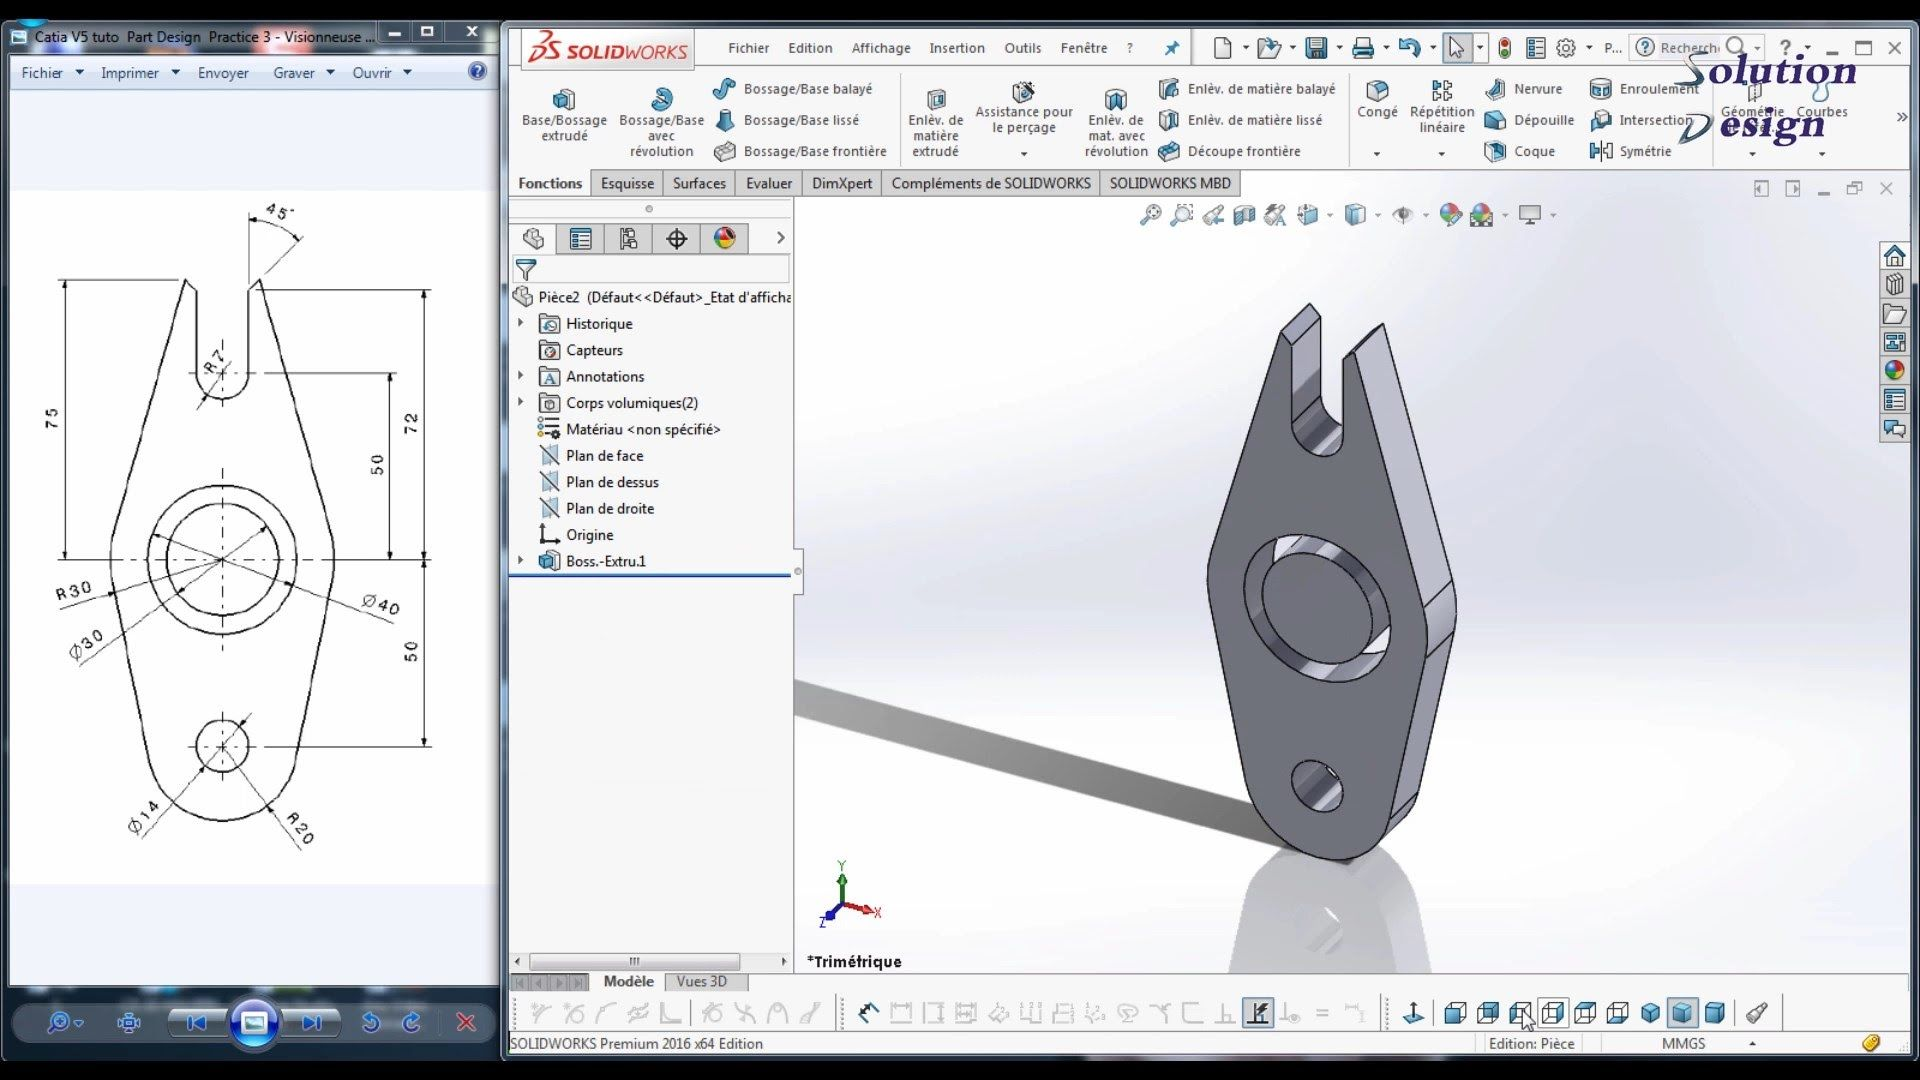 solidworks tuto practice 3 full hd for beginners solidworks